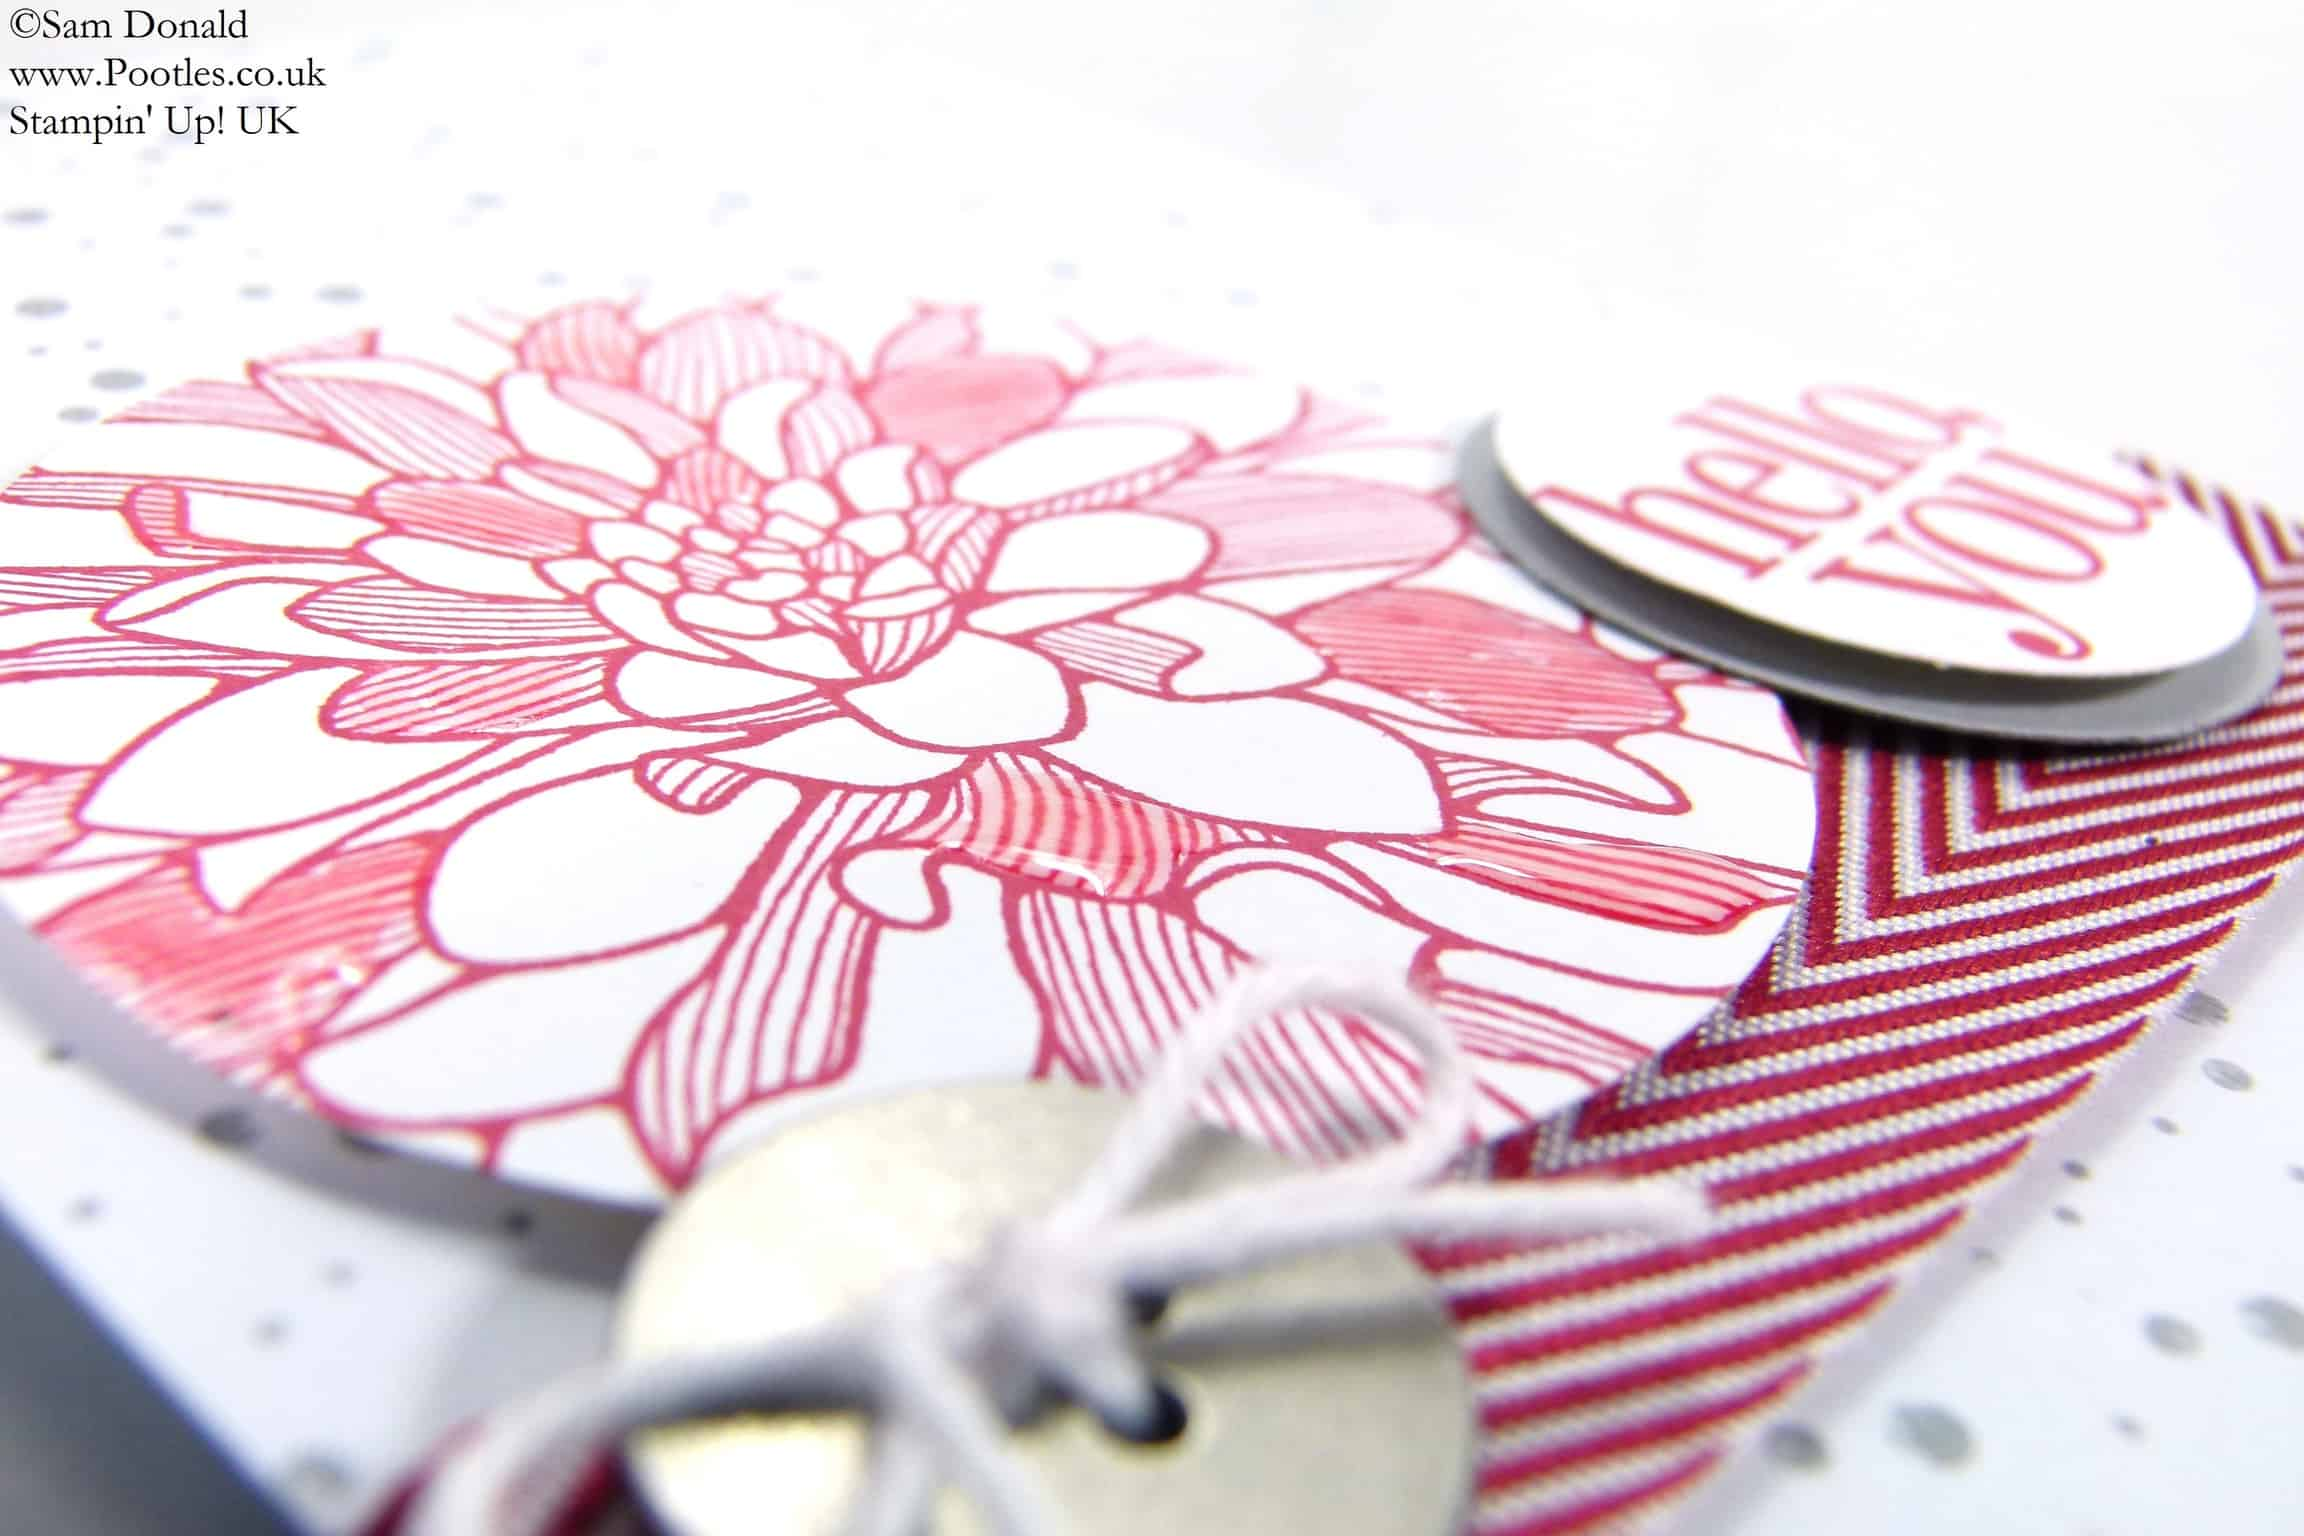 POOTLES Stampin' Up! UK Regarding Dahlias Takes on Simply Happenings!